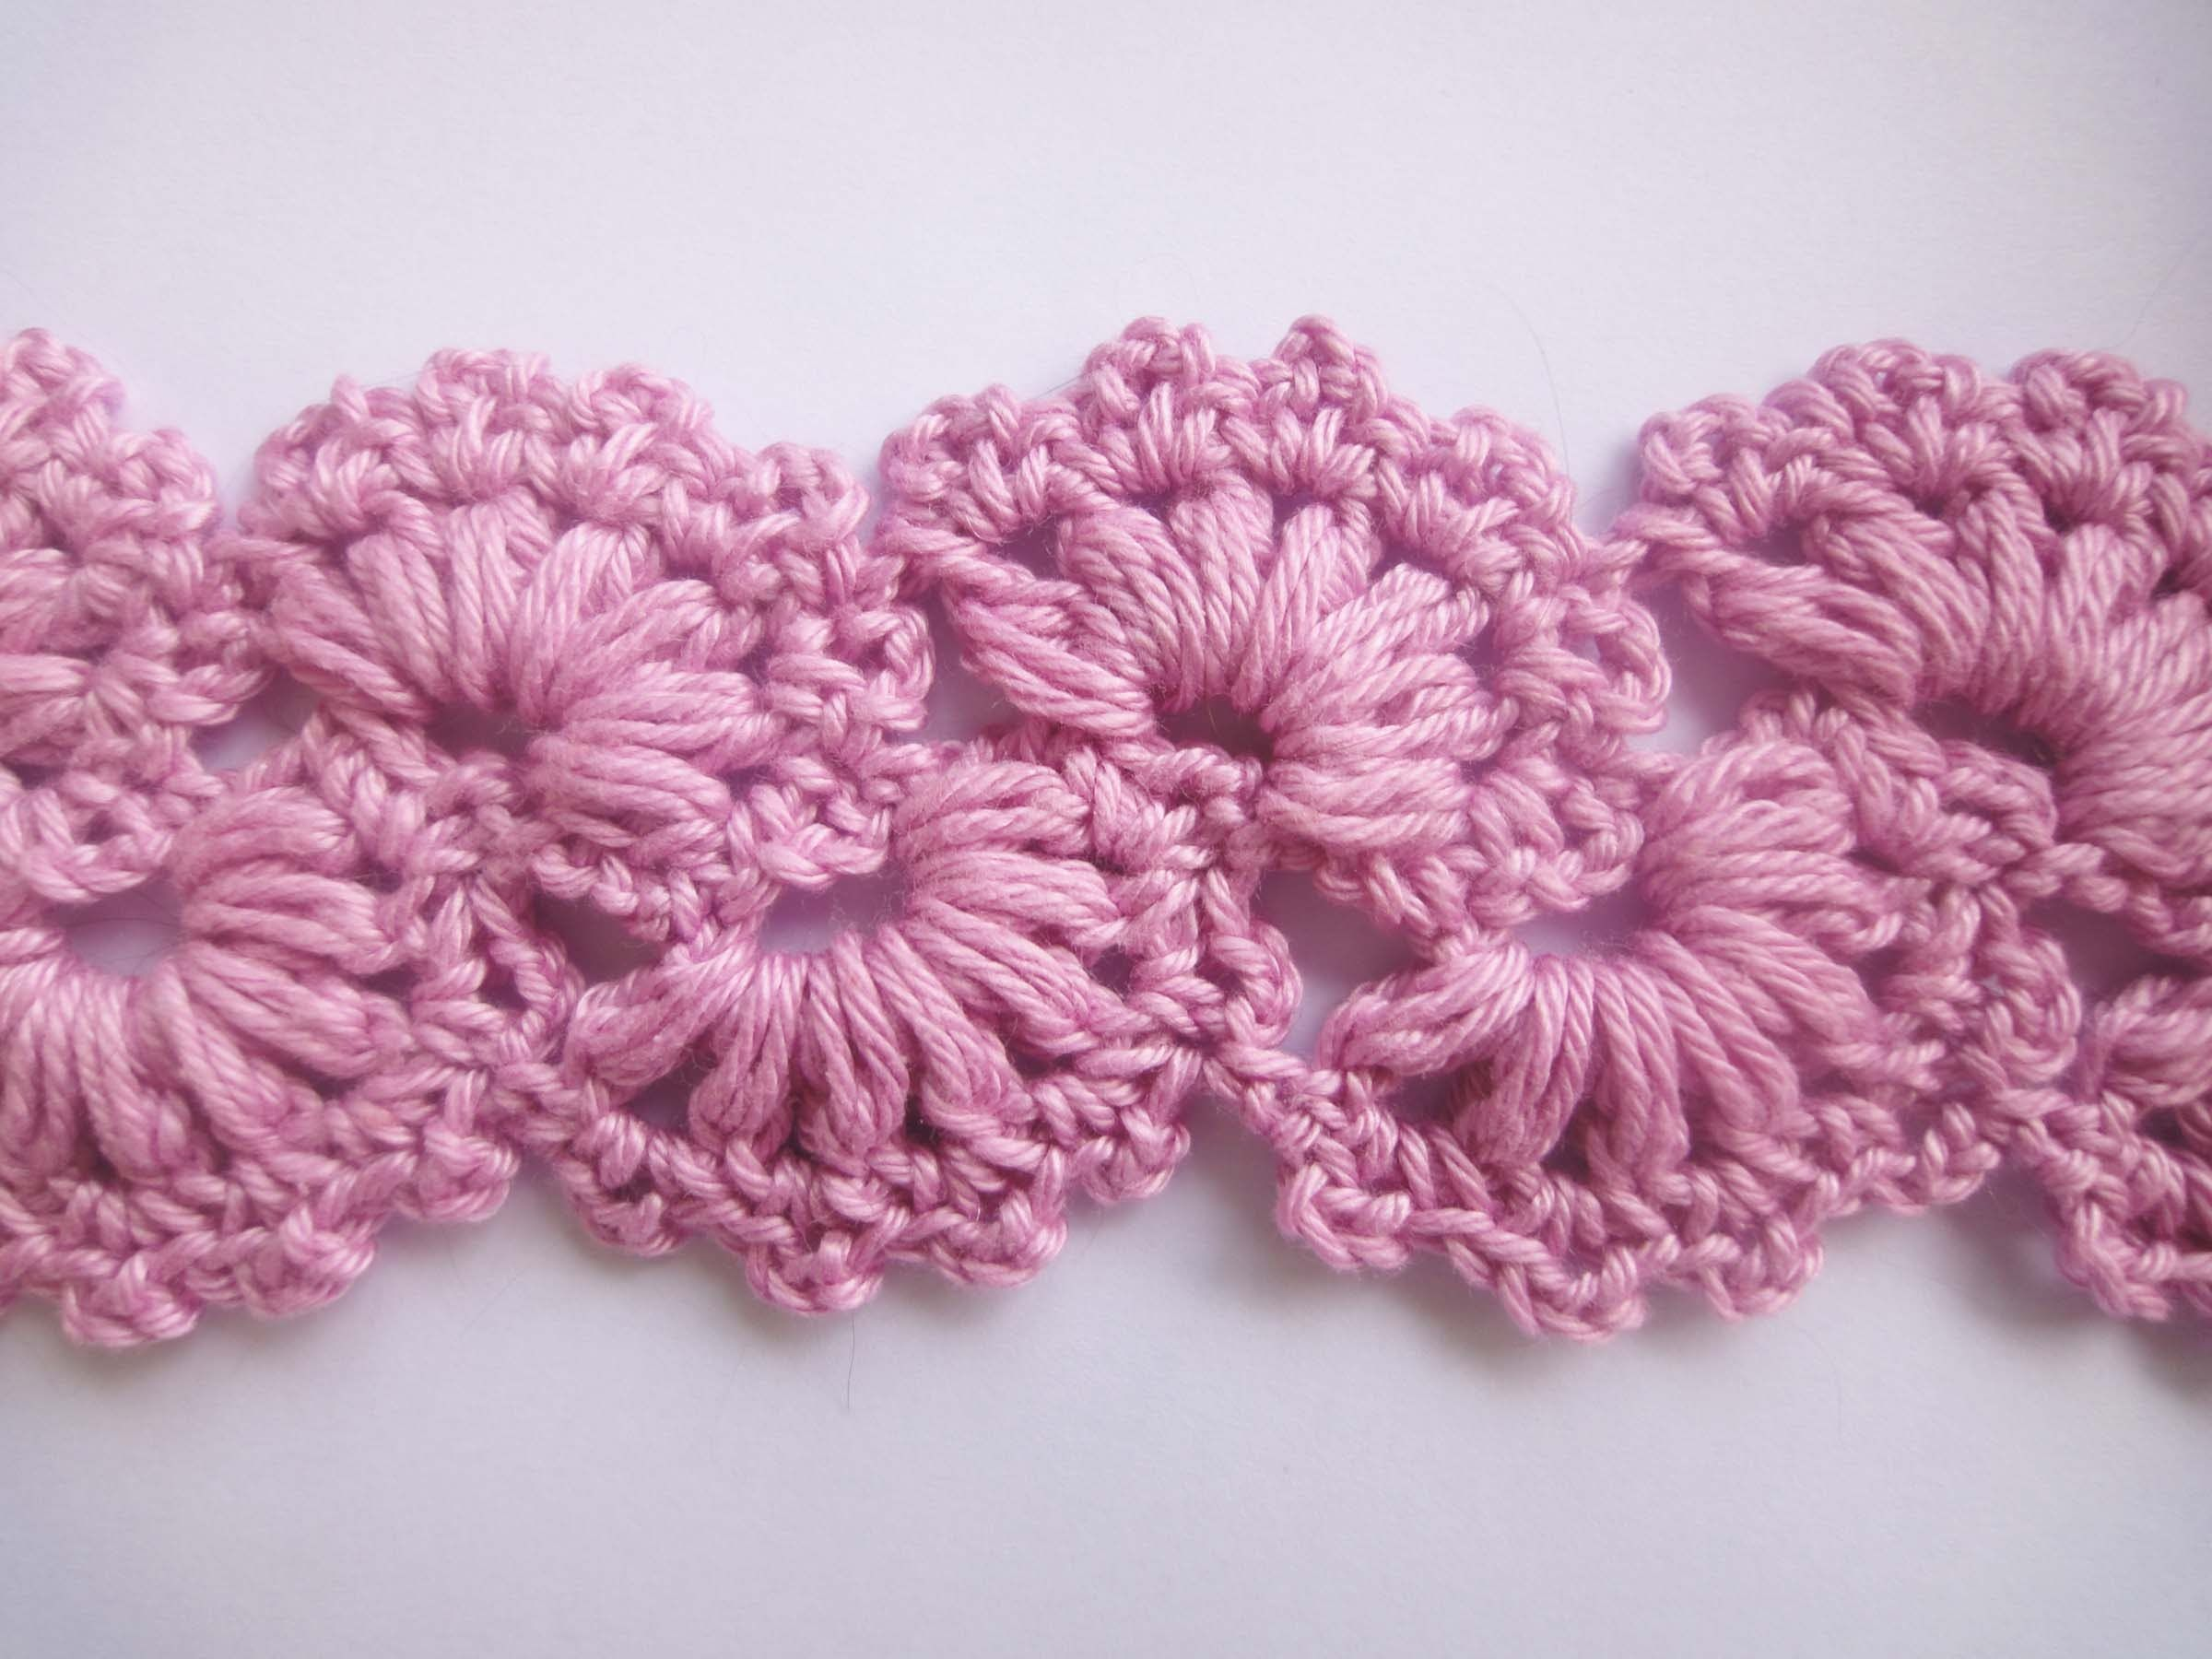 How to knit ribbon lace crochet. Crochet Irish Crochet Lace 61